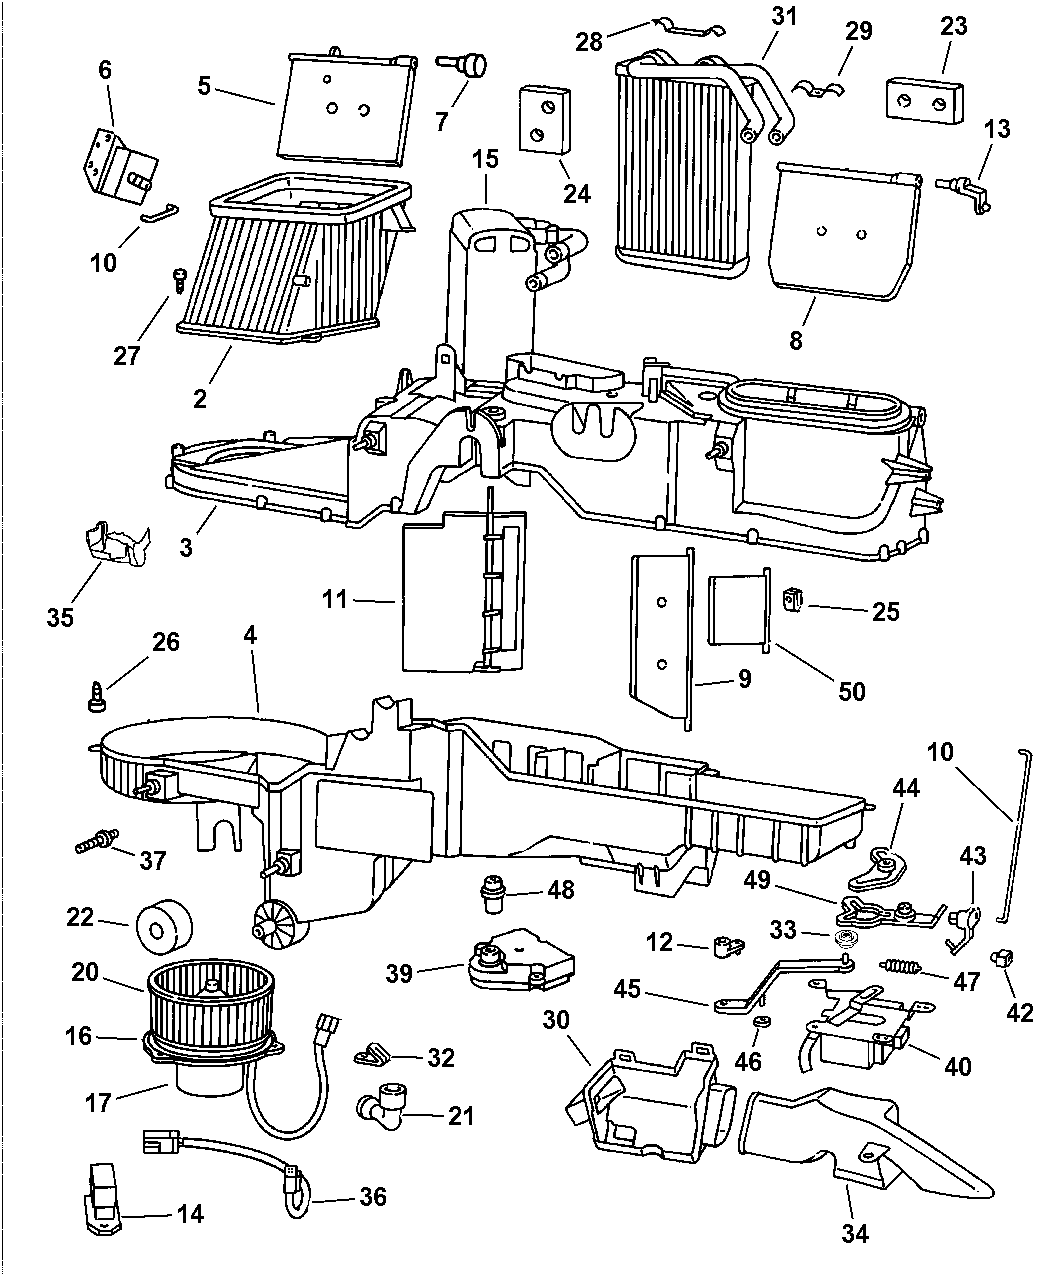 diagram taskmaster model wiring p3p5150ca1n ford model wiring 4883693aa - genuine mopar wiring-heater and a/c